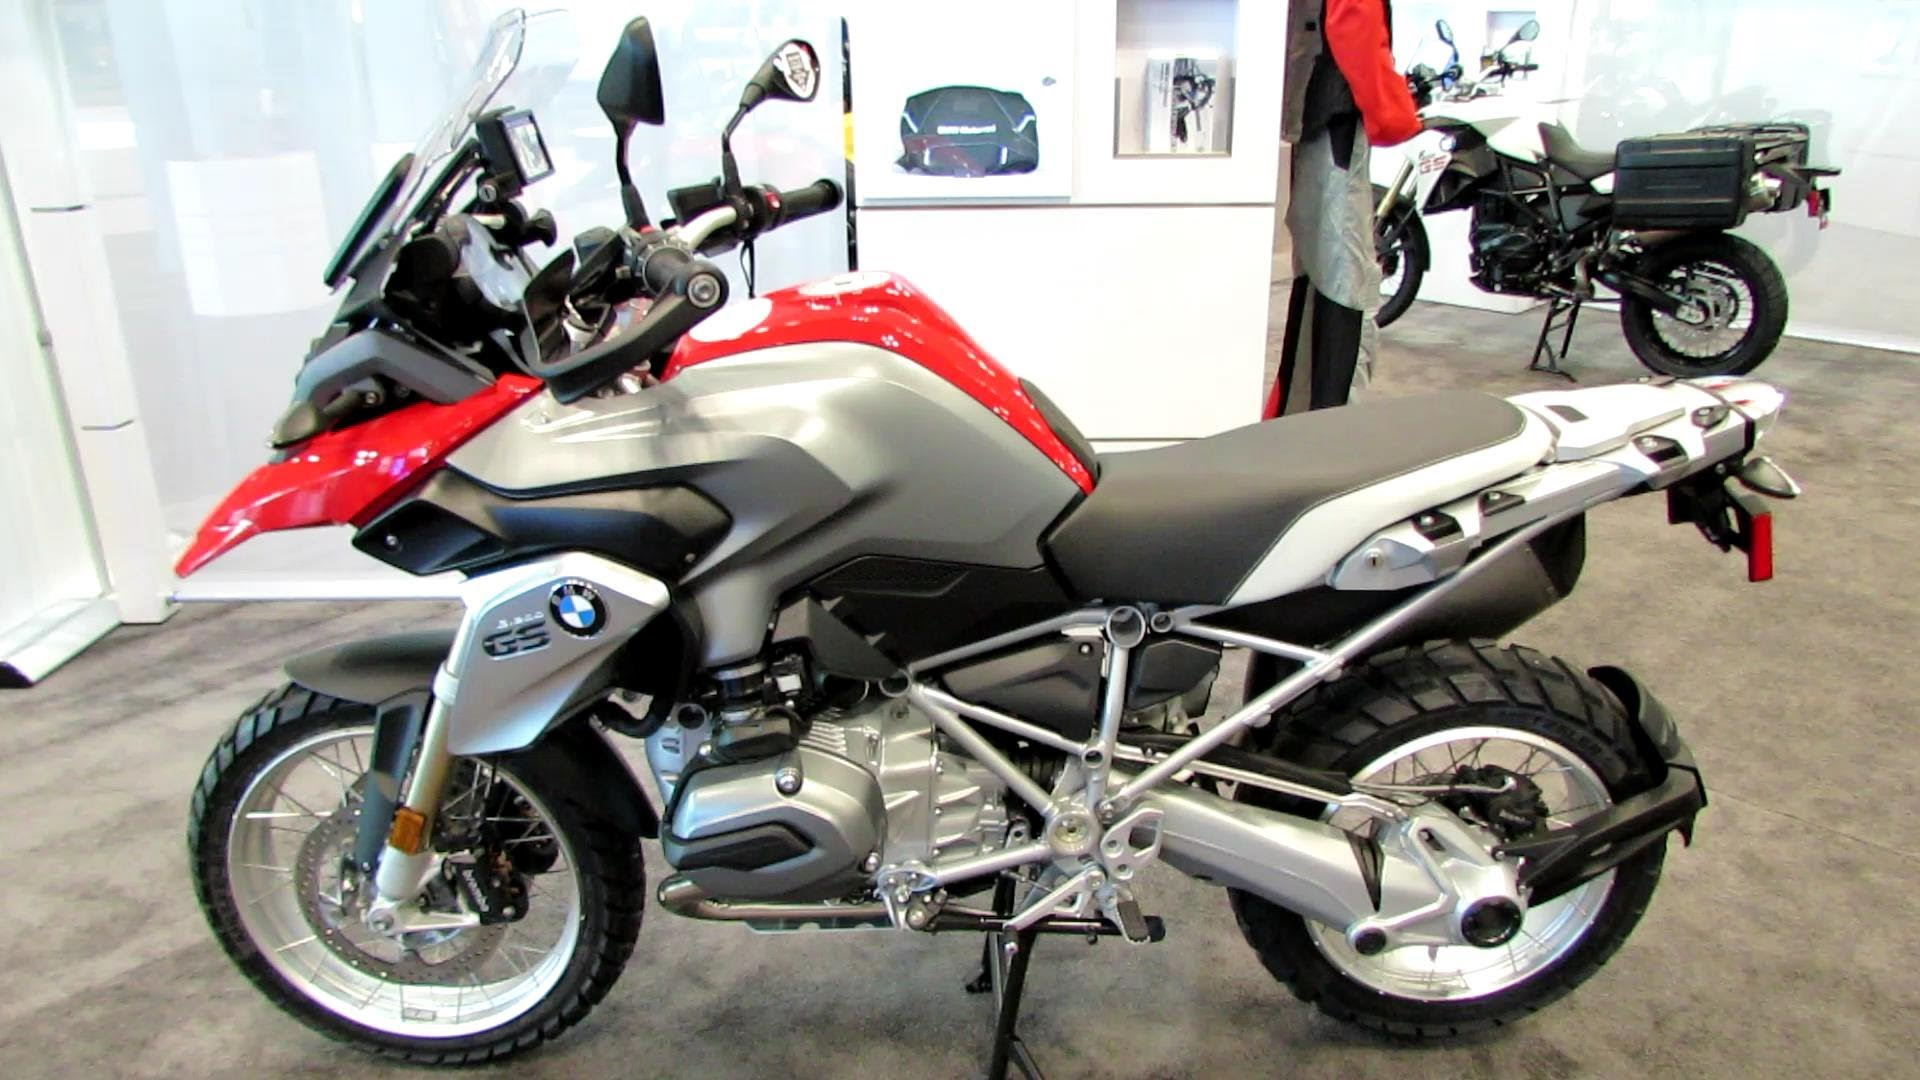 BMW R1200GS images #9169